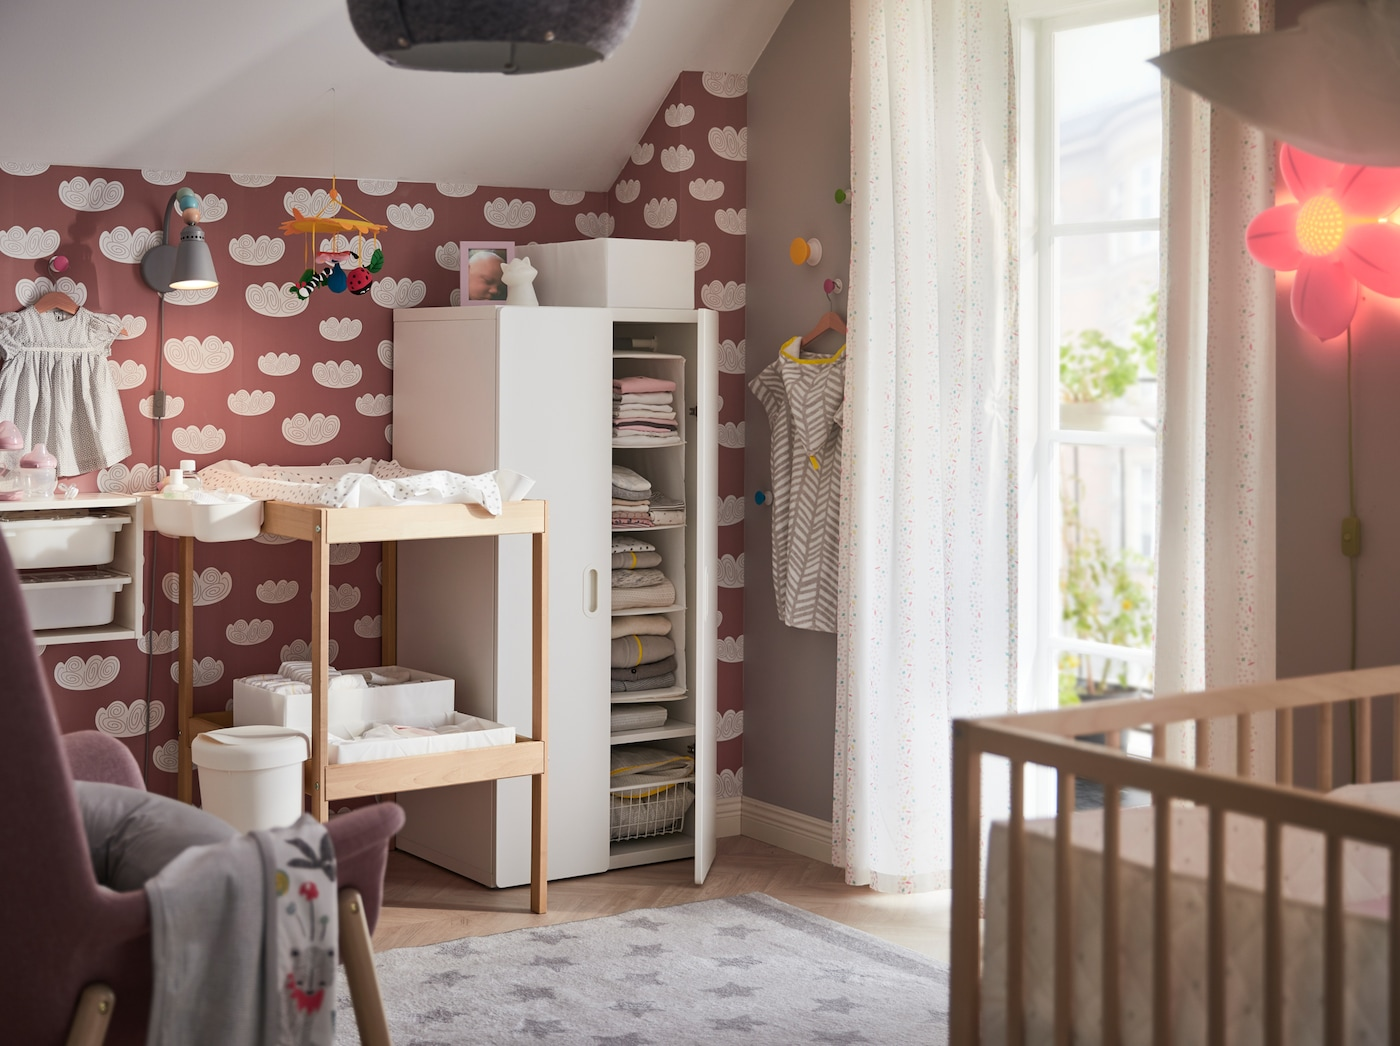 IKEA STUVA FRITIDS white clothes wardrobe and SNIGLAR beech and white changing table in a nursery.